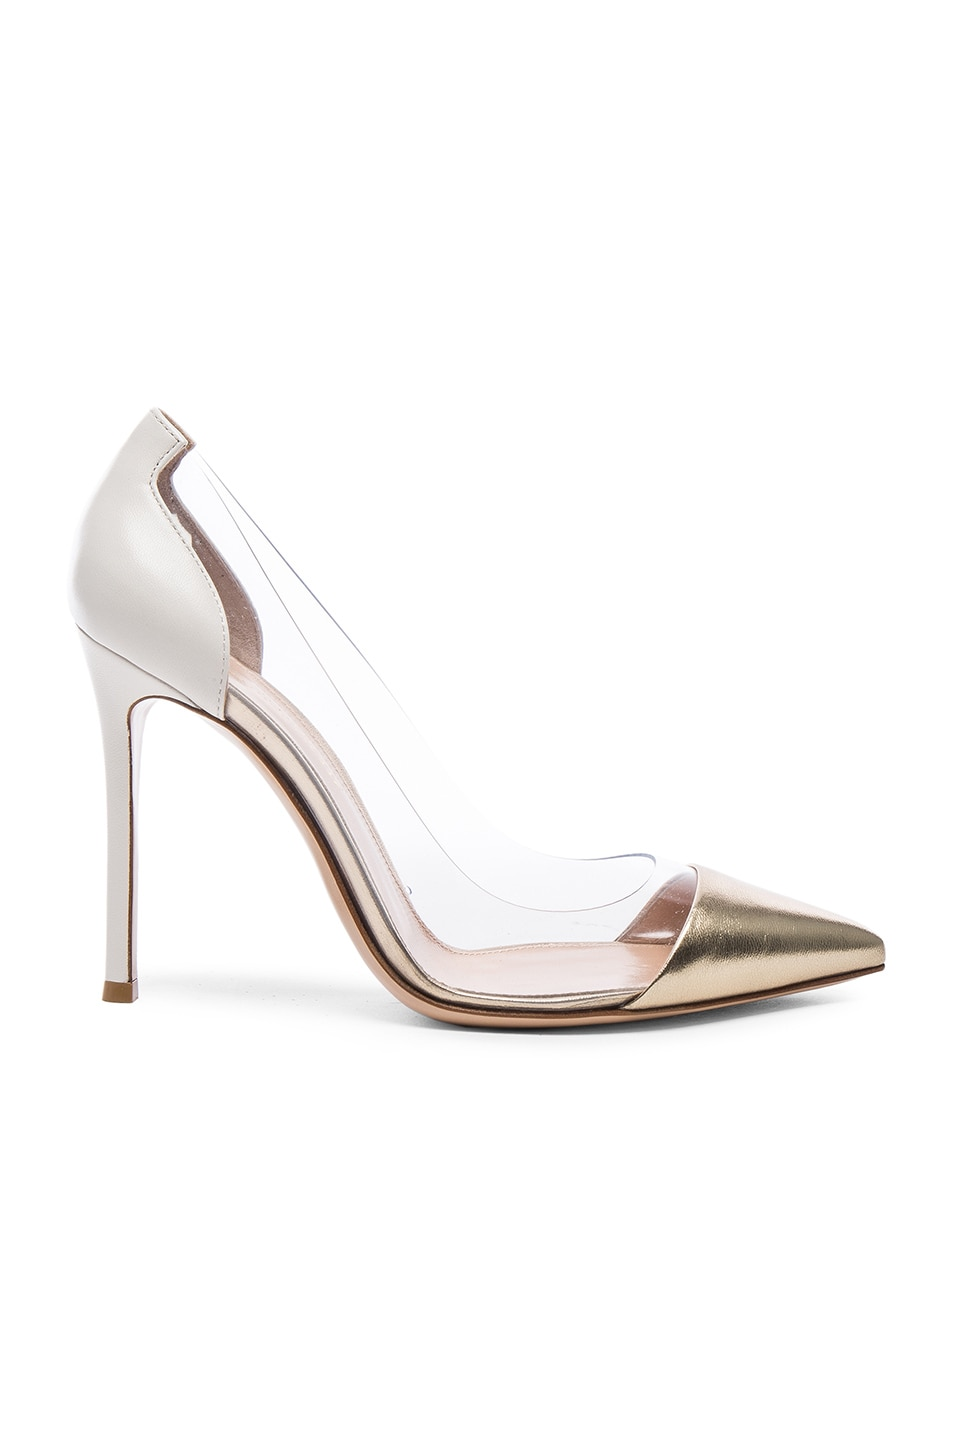 Image 6 of Gianvito Rossi Leather Plexi Pumps in Mekong & Off White